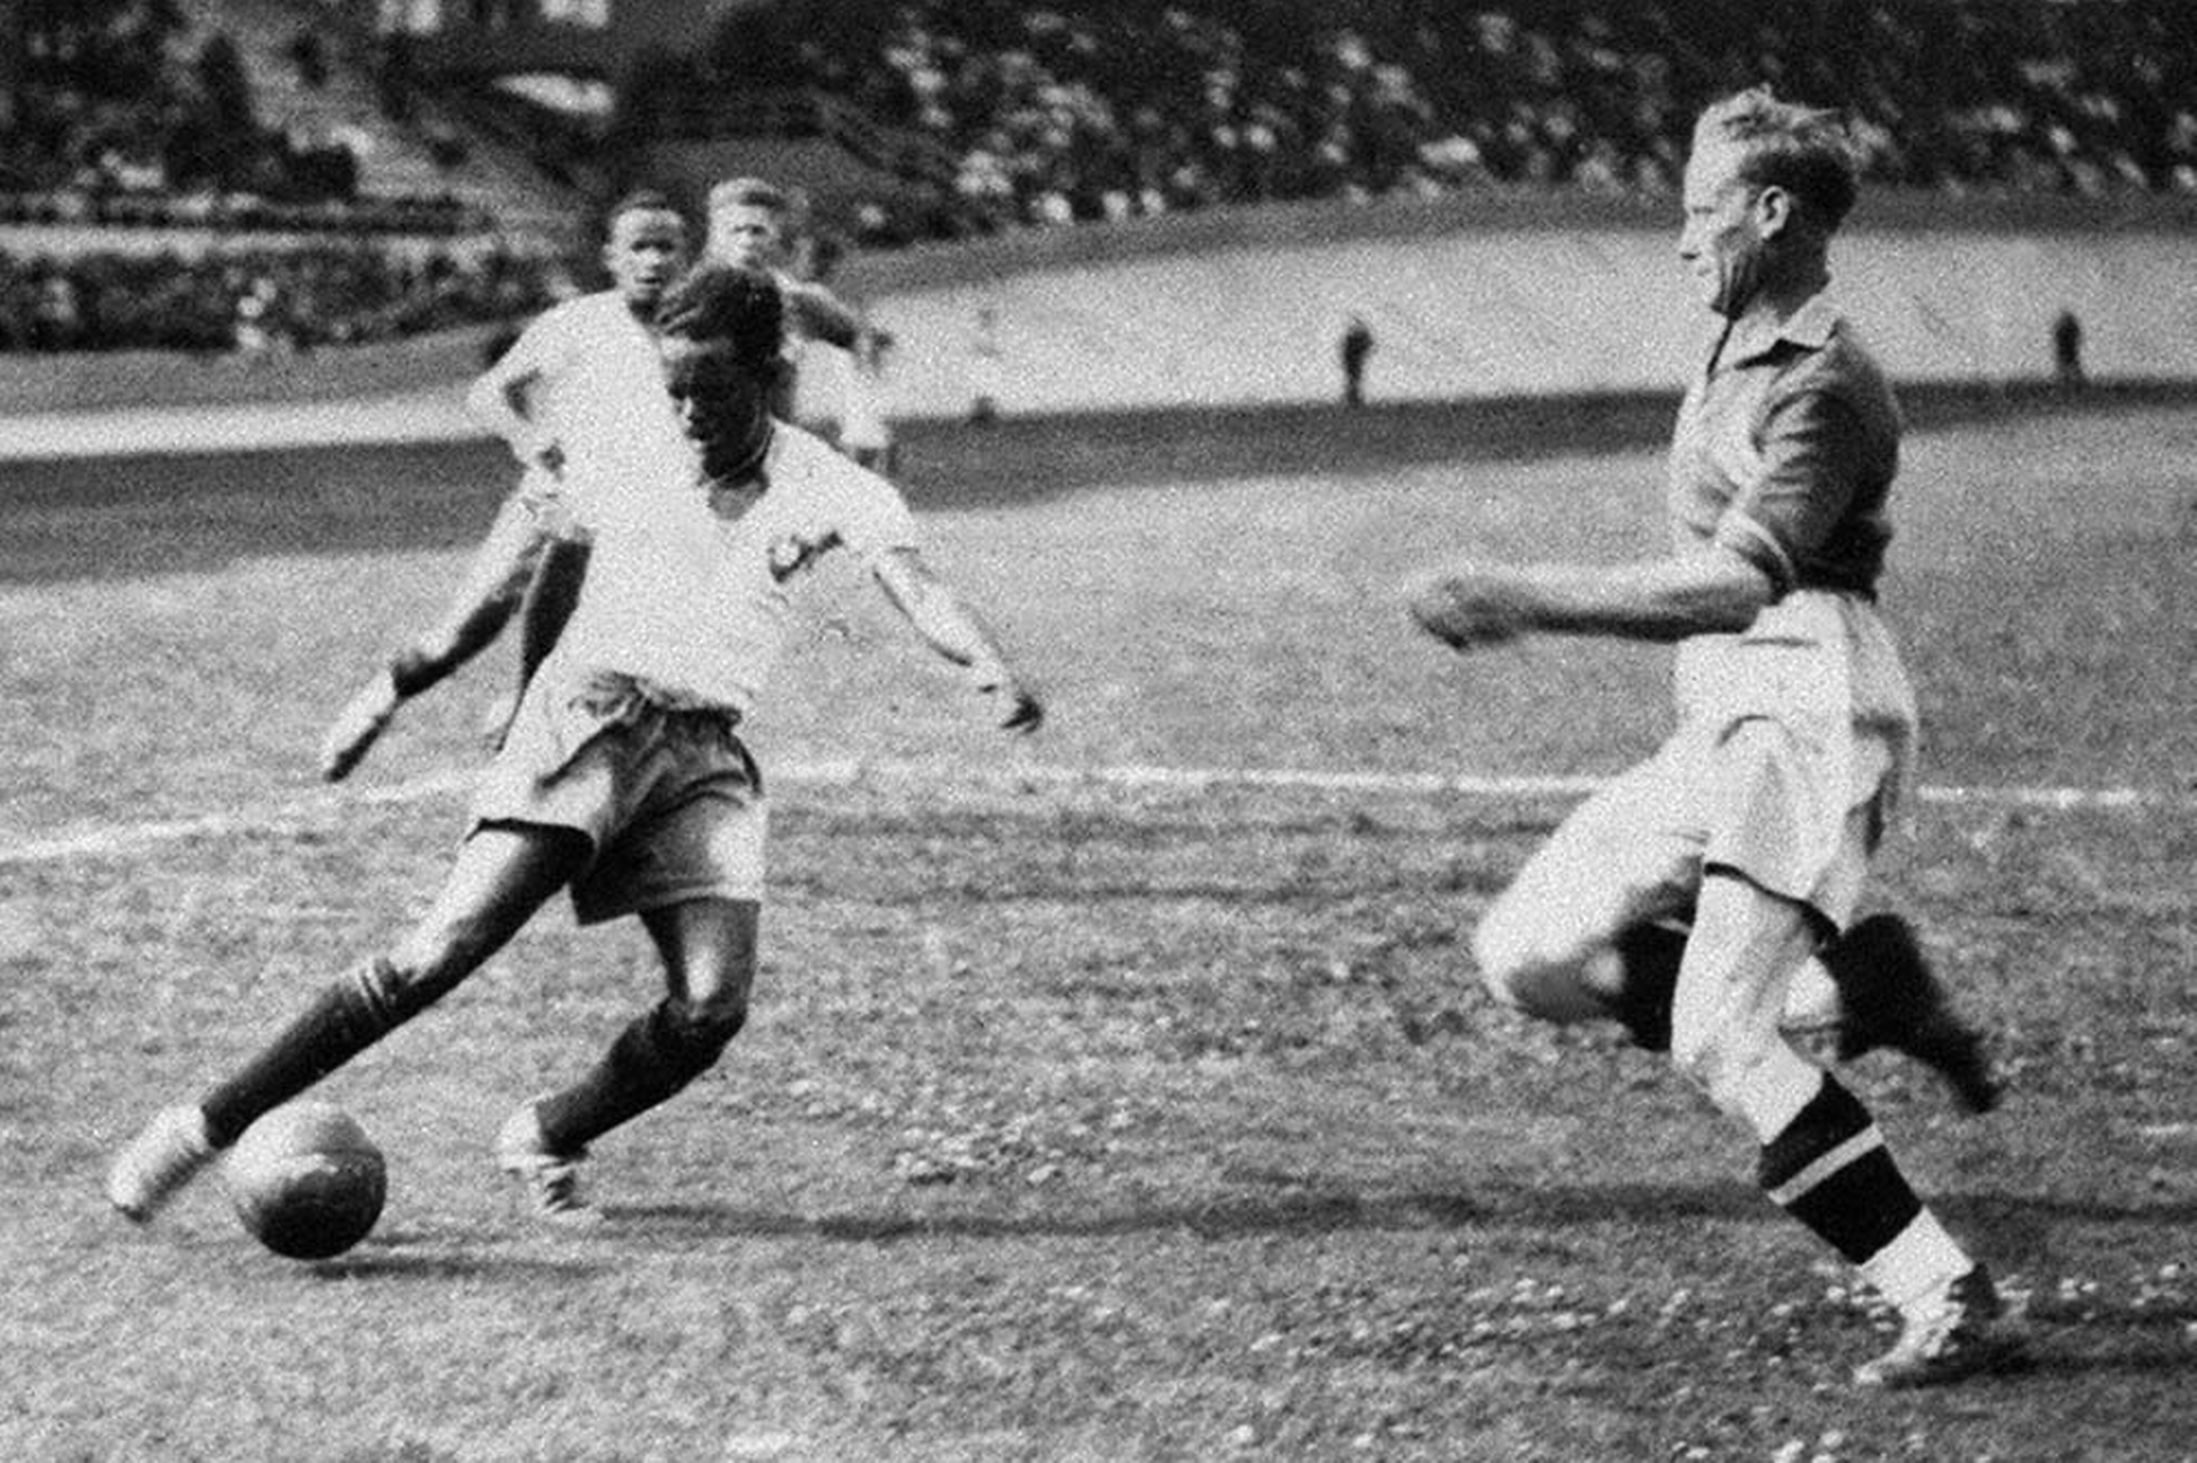 Leonidas-da-Silva-controlling-the-ball-in-front-of-a-Swedish-defender-during-the-1938-World-Cup